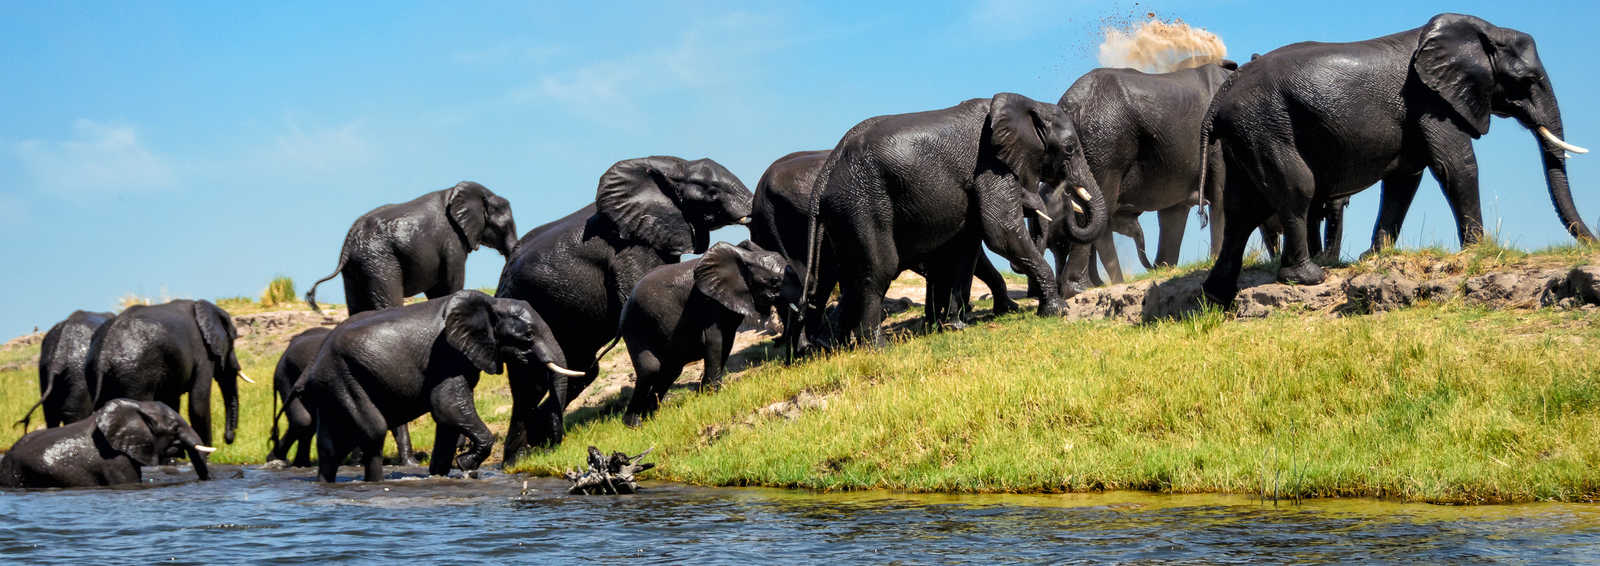 Elephants on a riverbank